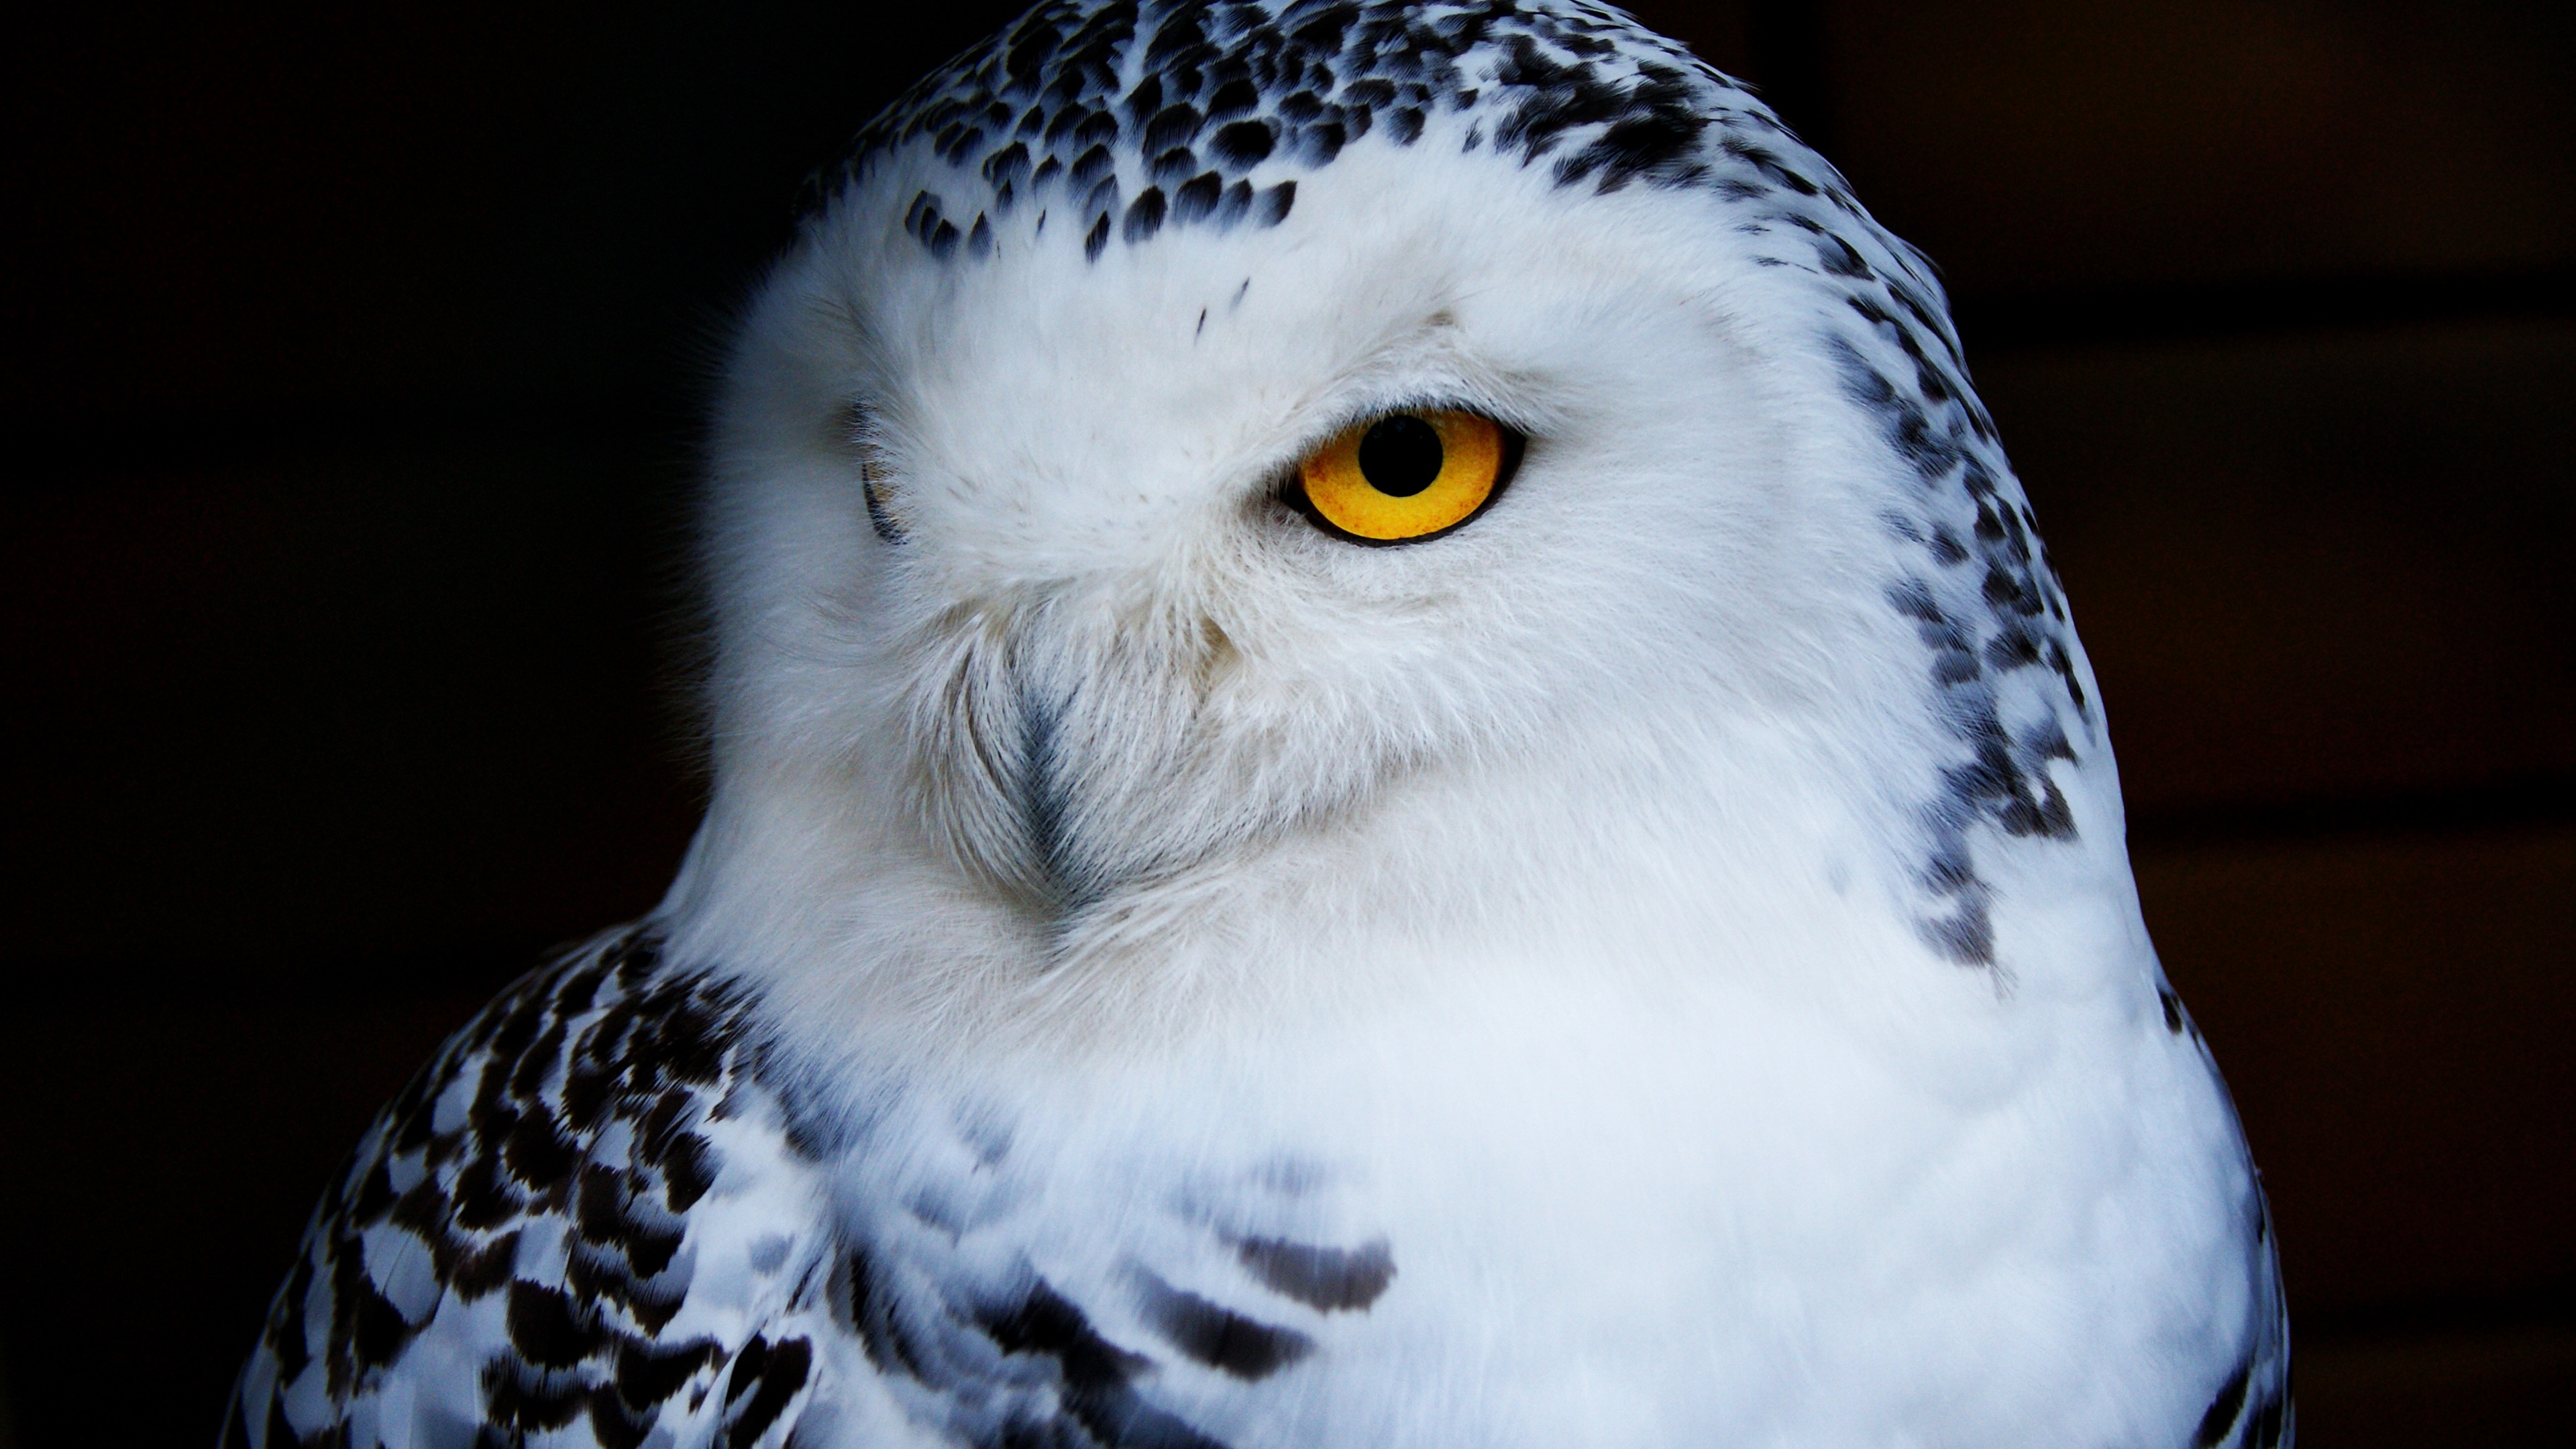 Wallpaper Owl Front View Black Background 3840x2160 Uhd 4k Picture Image